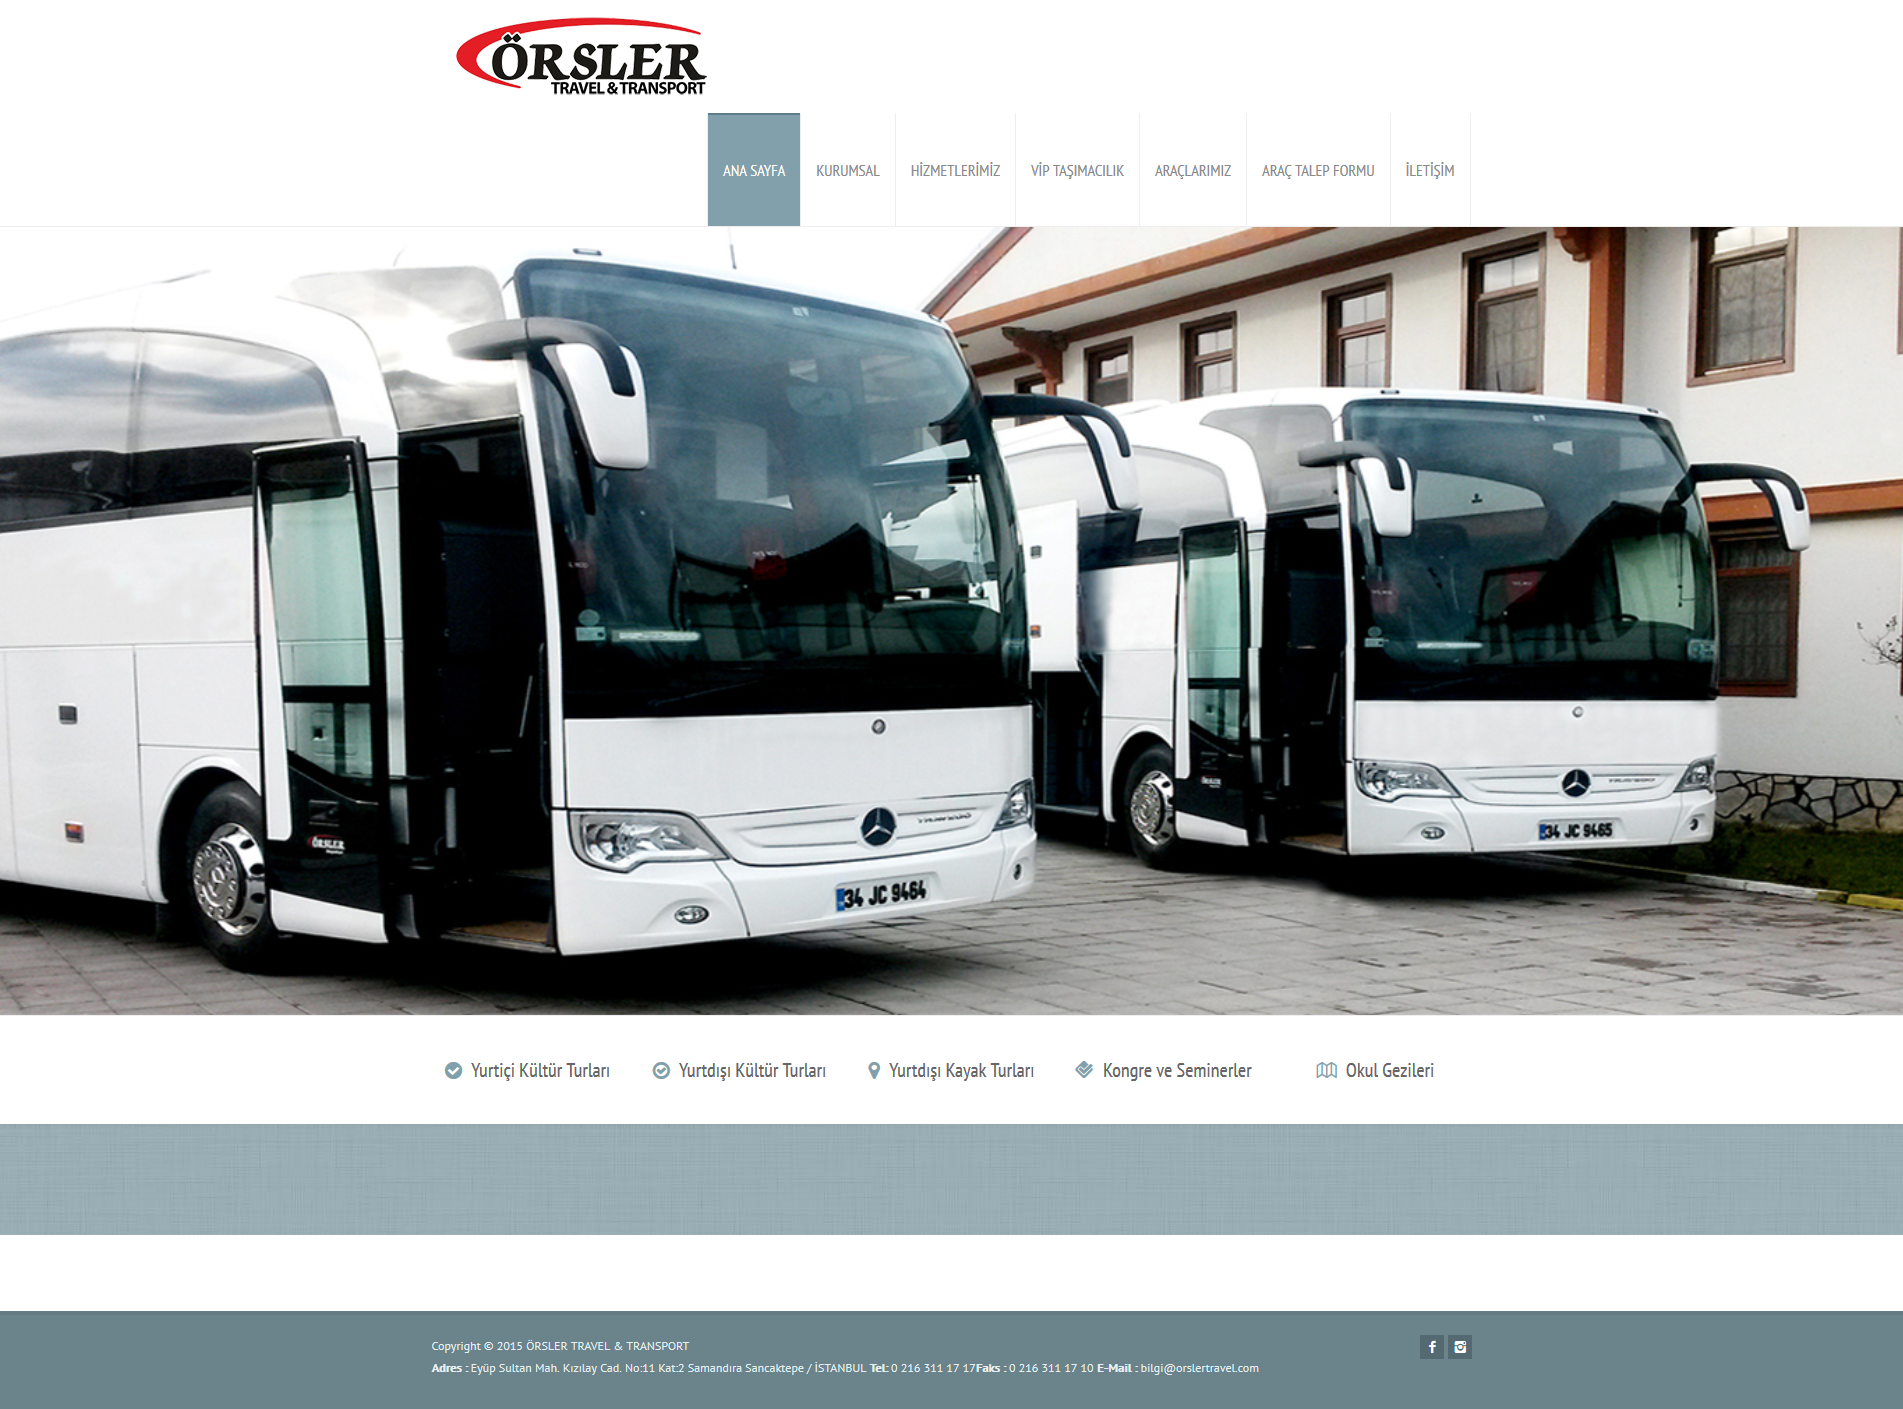 Orsler Travel